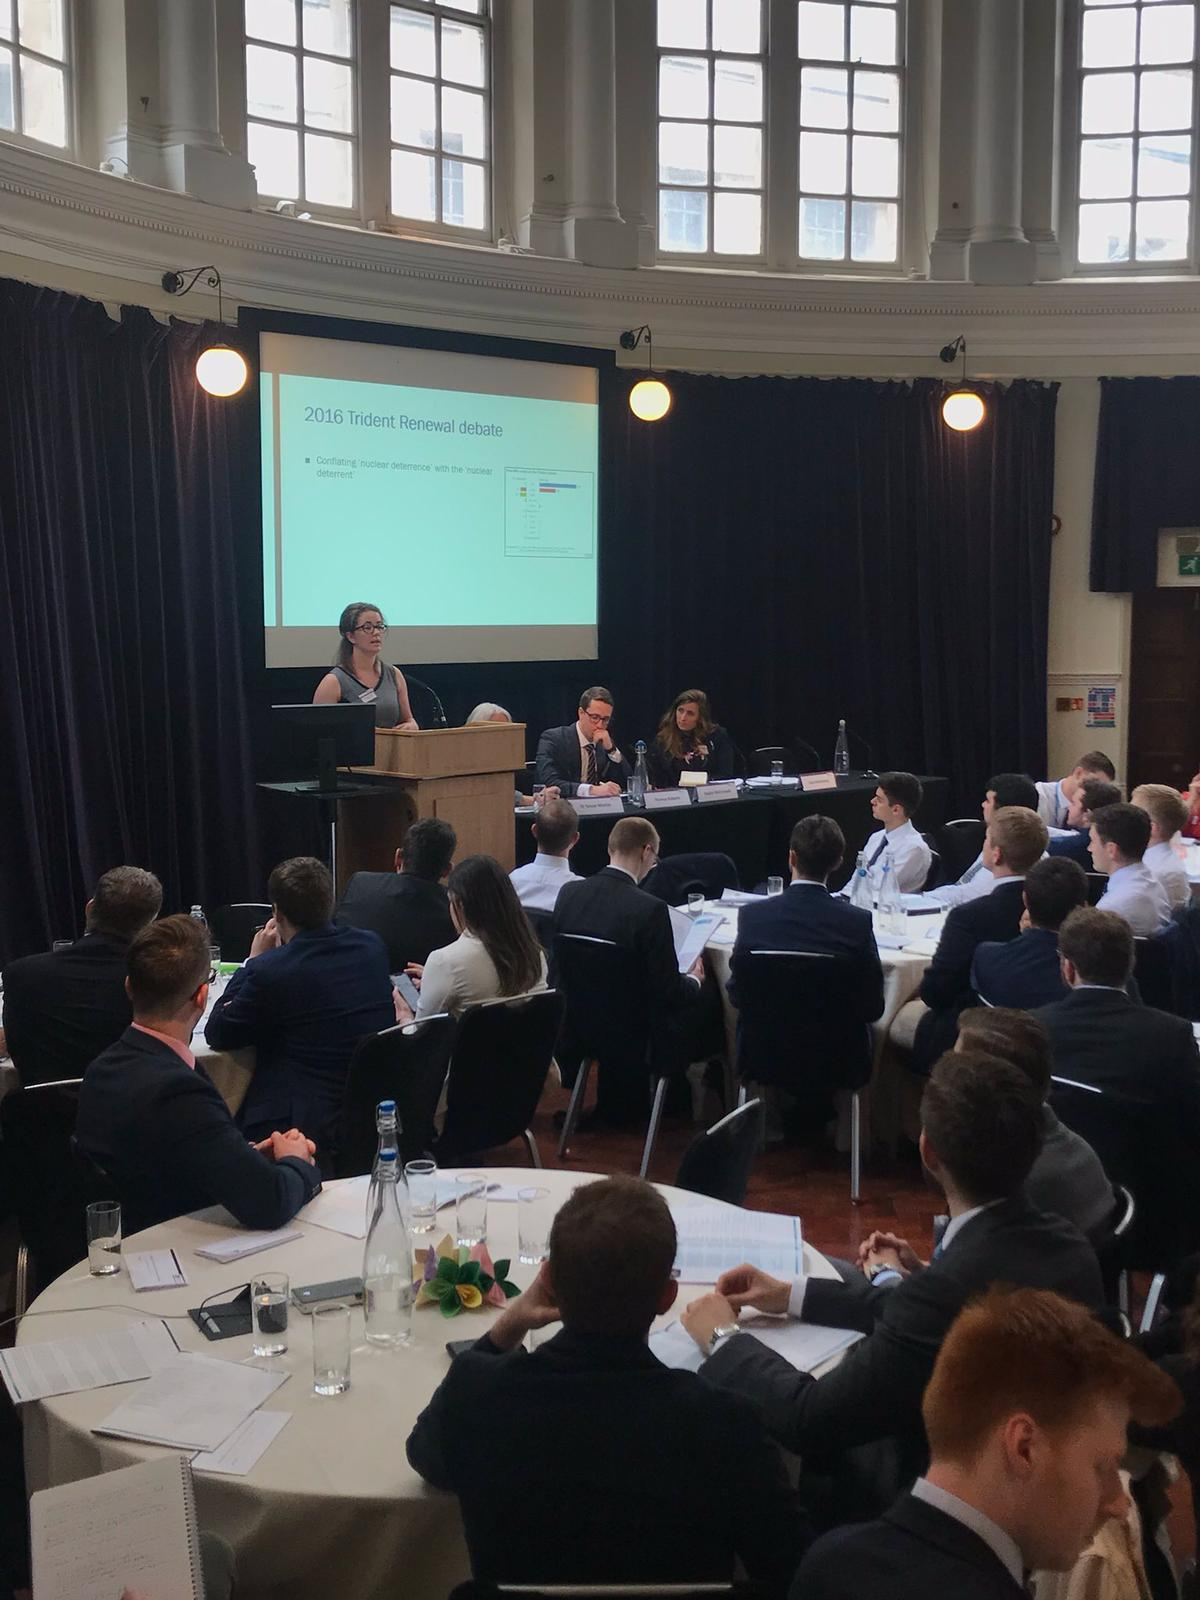 Sophie presents at a  Royal United Services Institute  {RUSI) conference this past spring.